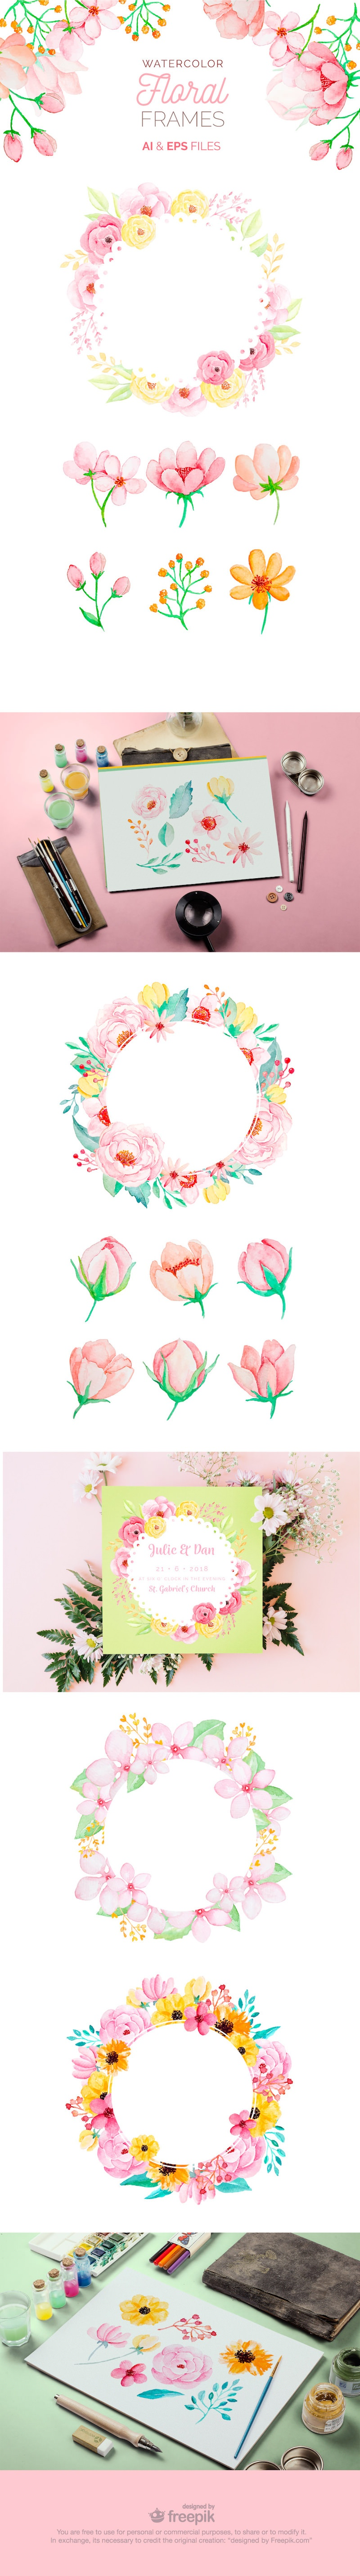 free watercolor floral frames vectors